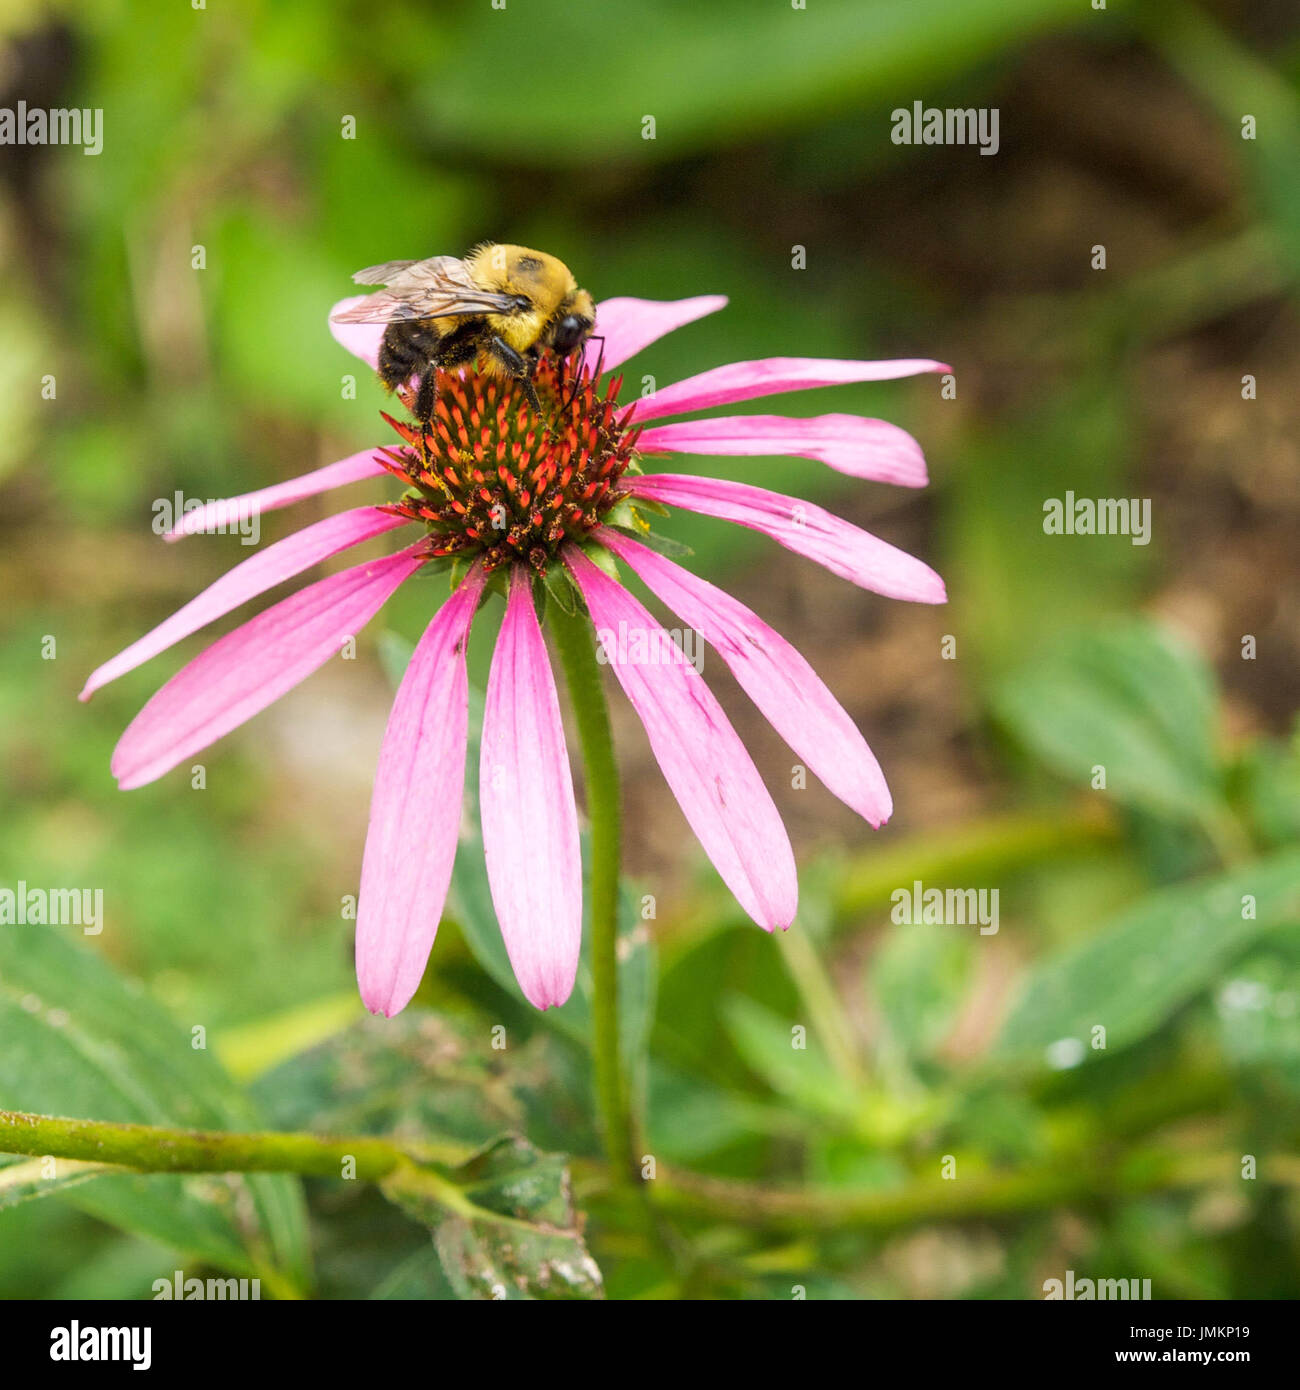 Bumble Bee on Purple Cone Flower - Stock Image